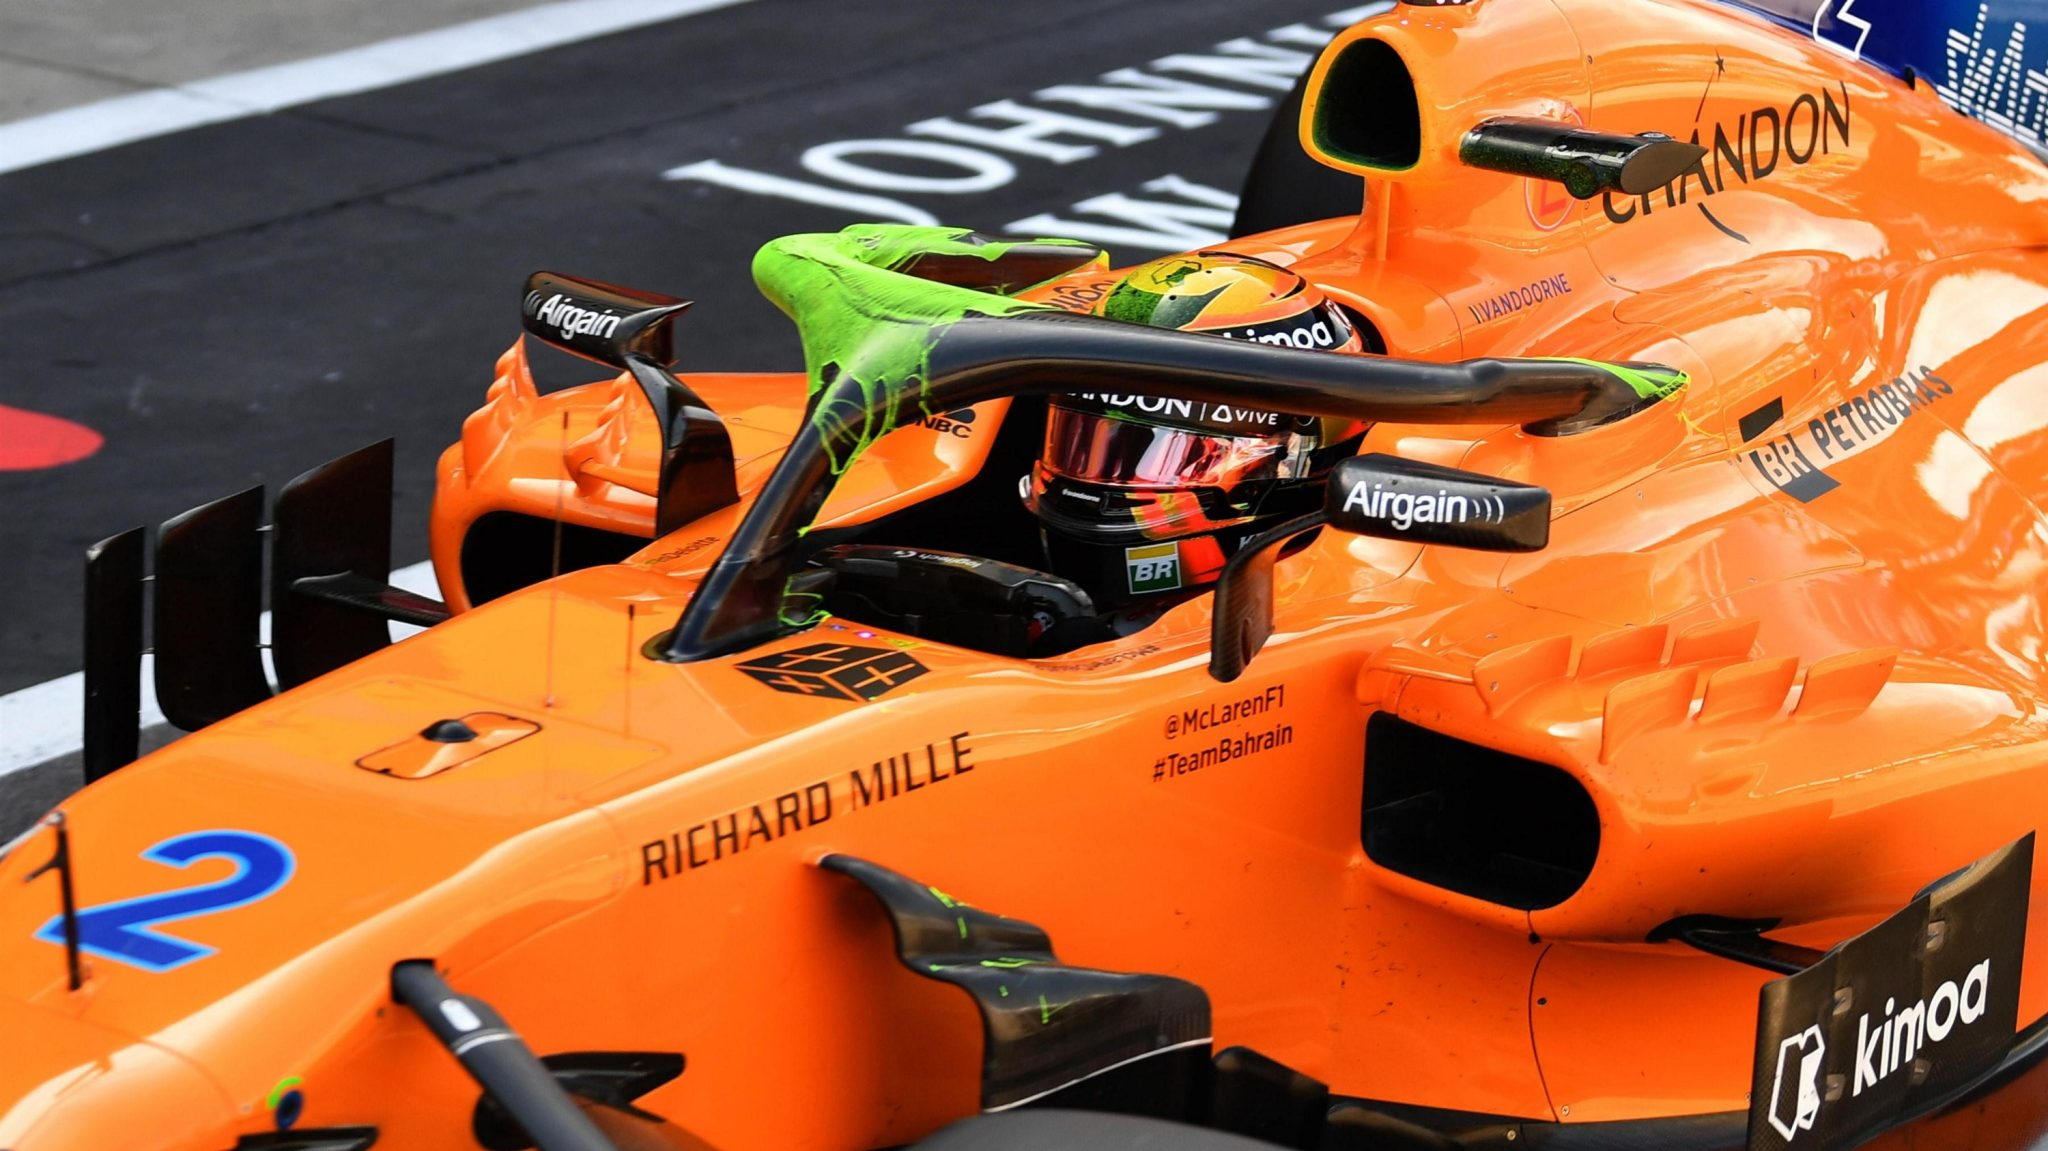 https://www.formula1.com/content/fom-website/en/latest/features/2018/7/gallery--the-best-images-from-great-britain/_jcr_content/featureContent/manual_gallery/image36.img.2048.medium.jpg/1530882874819.jpg